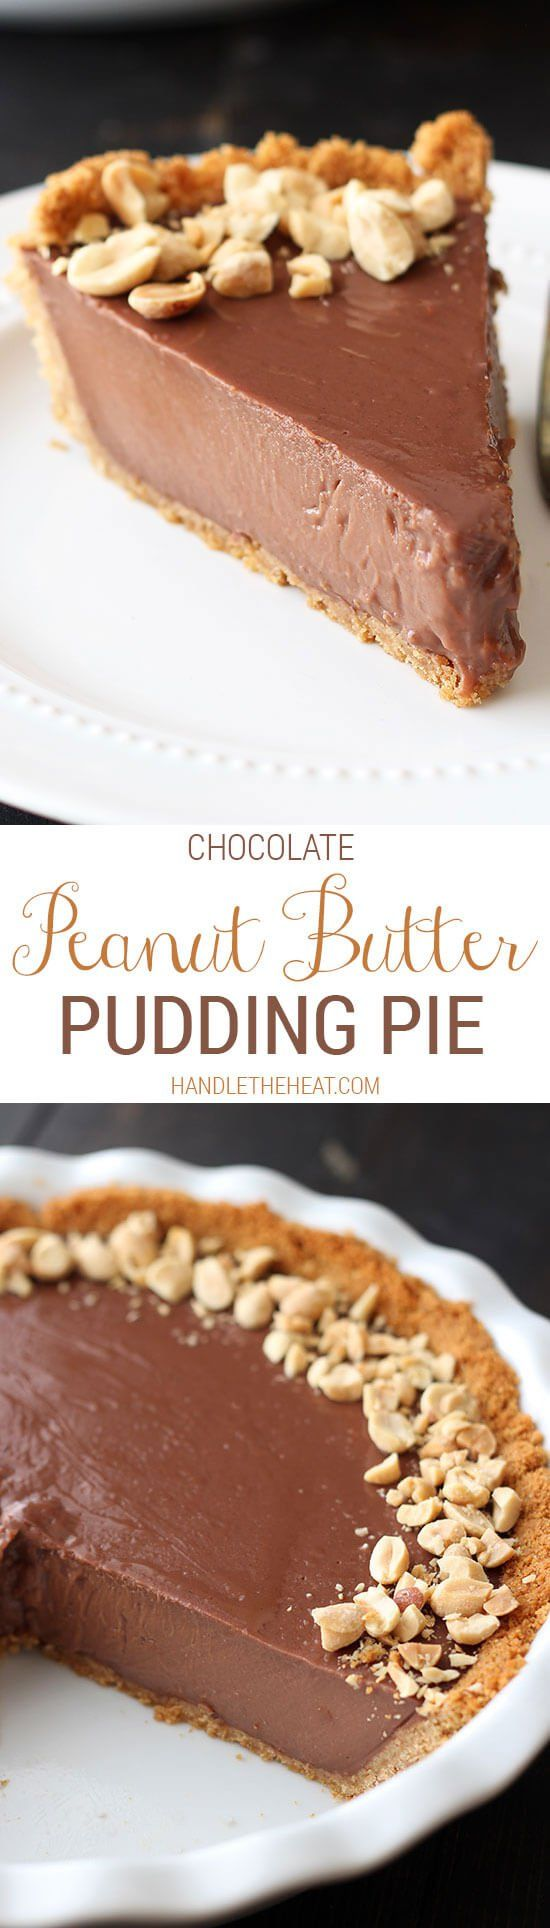 Chocolate Peanut Butter Pudding Pie - Handle the Heat